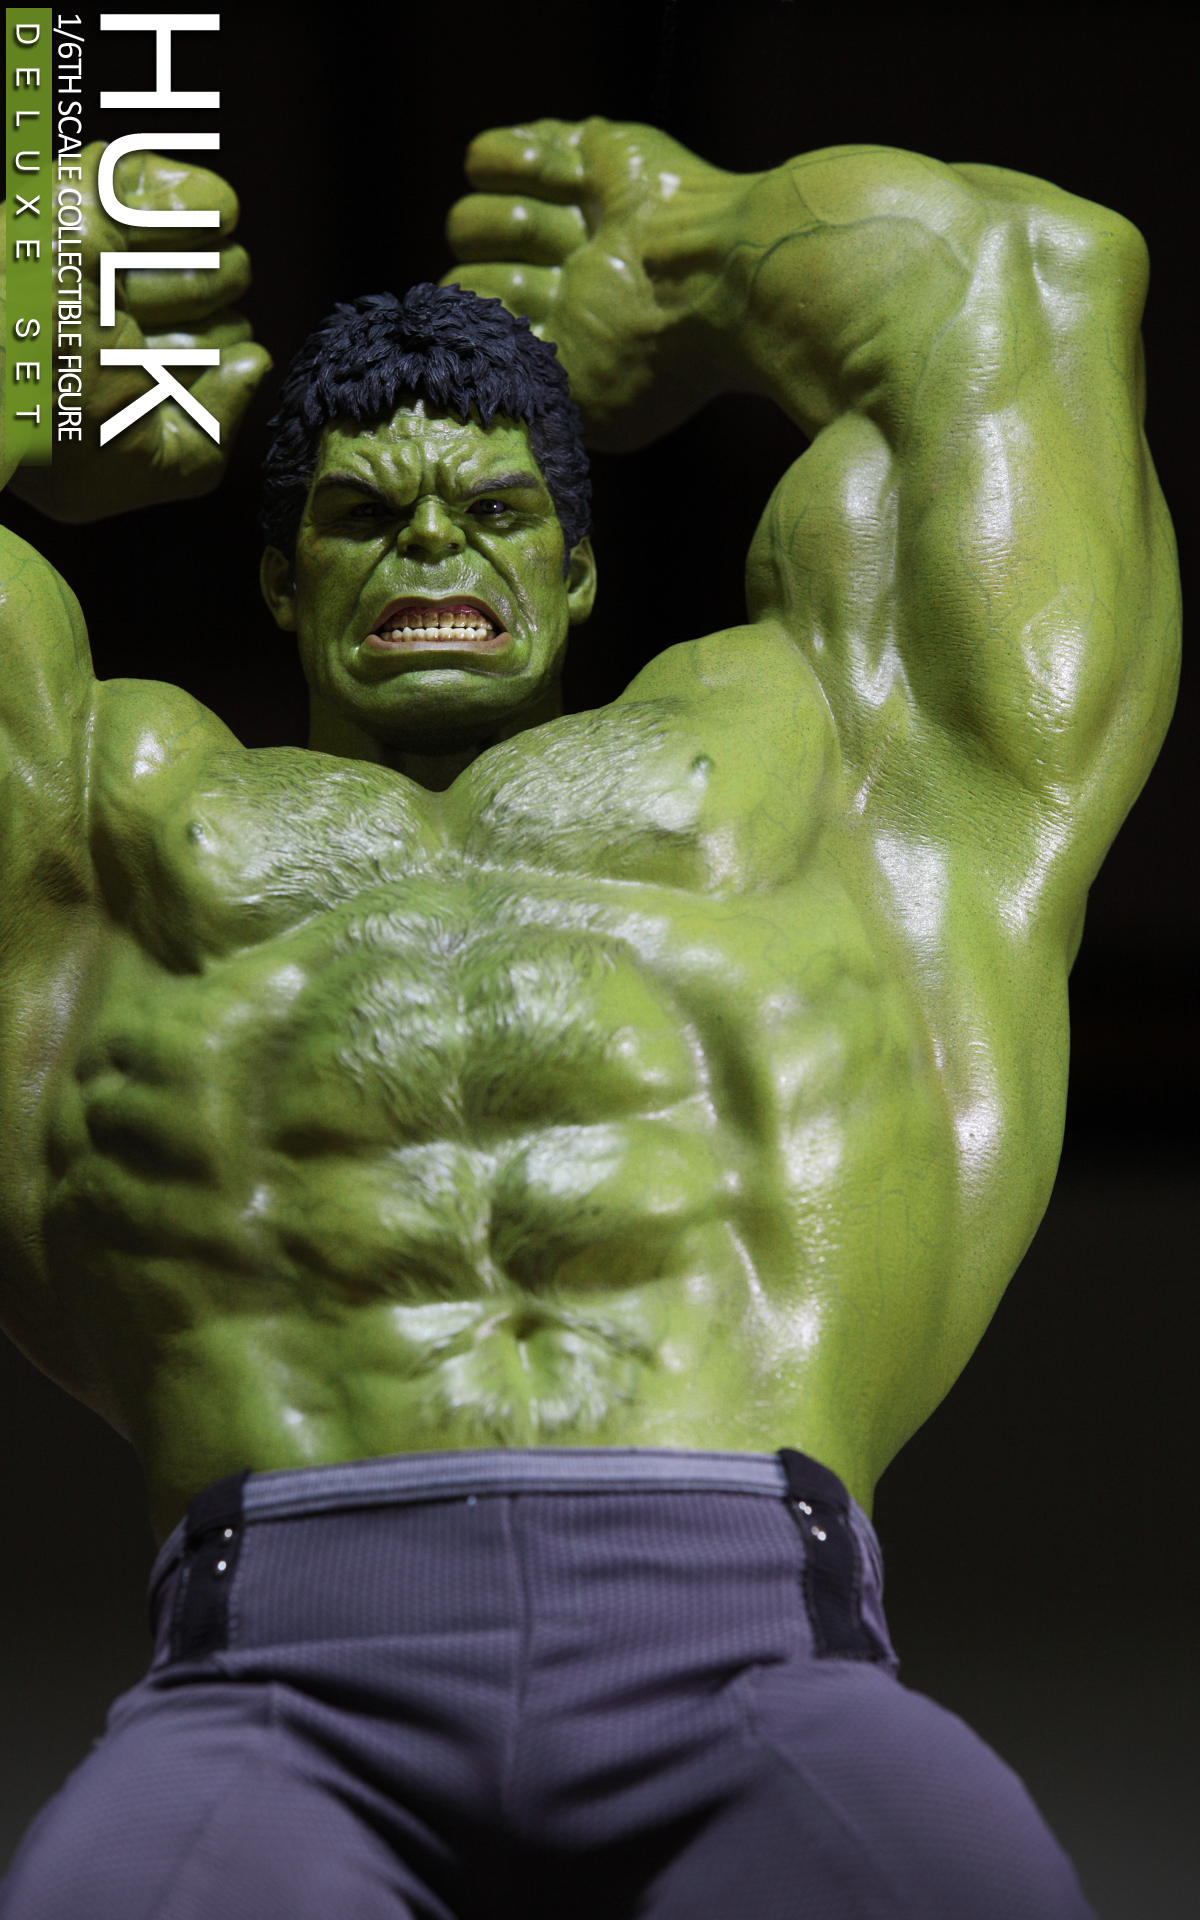 hottoys-avengers-age-of-ultron-hulk-picture14